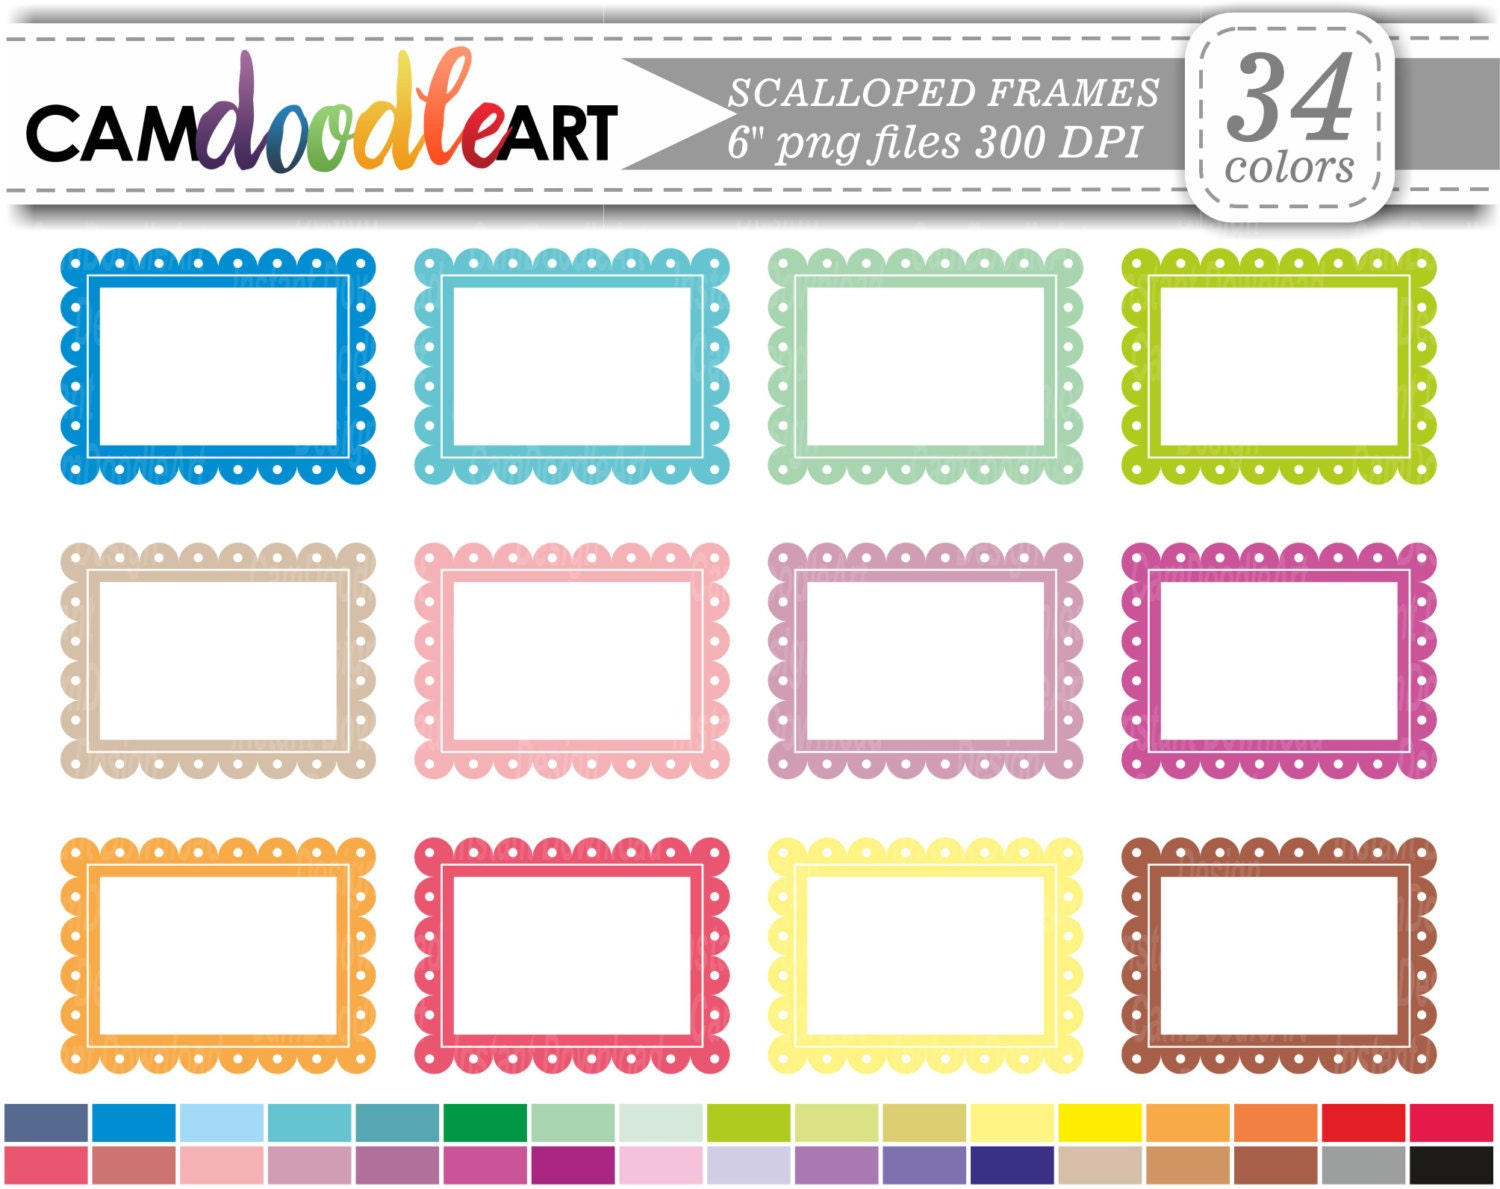 Scalloped Frame Clipart, Label Clipart, Scrapbooking Clipart ...